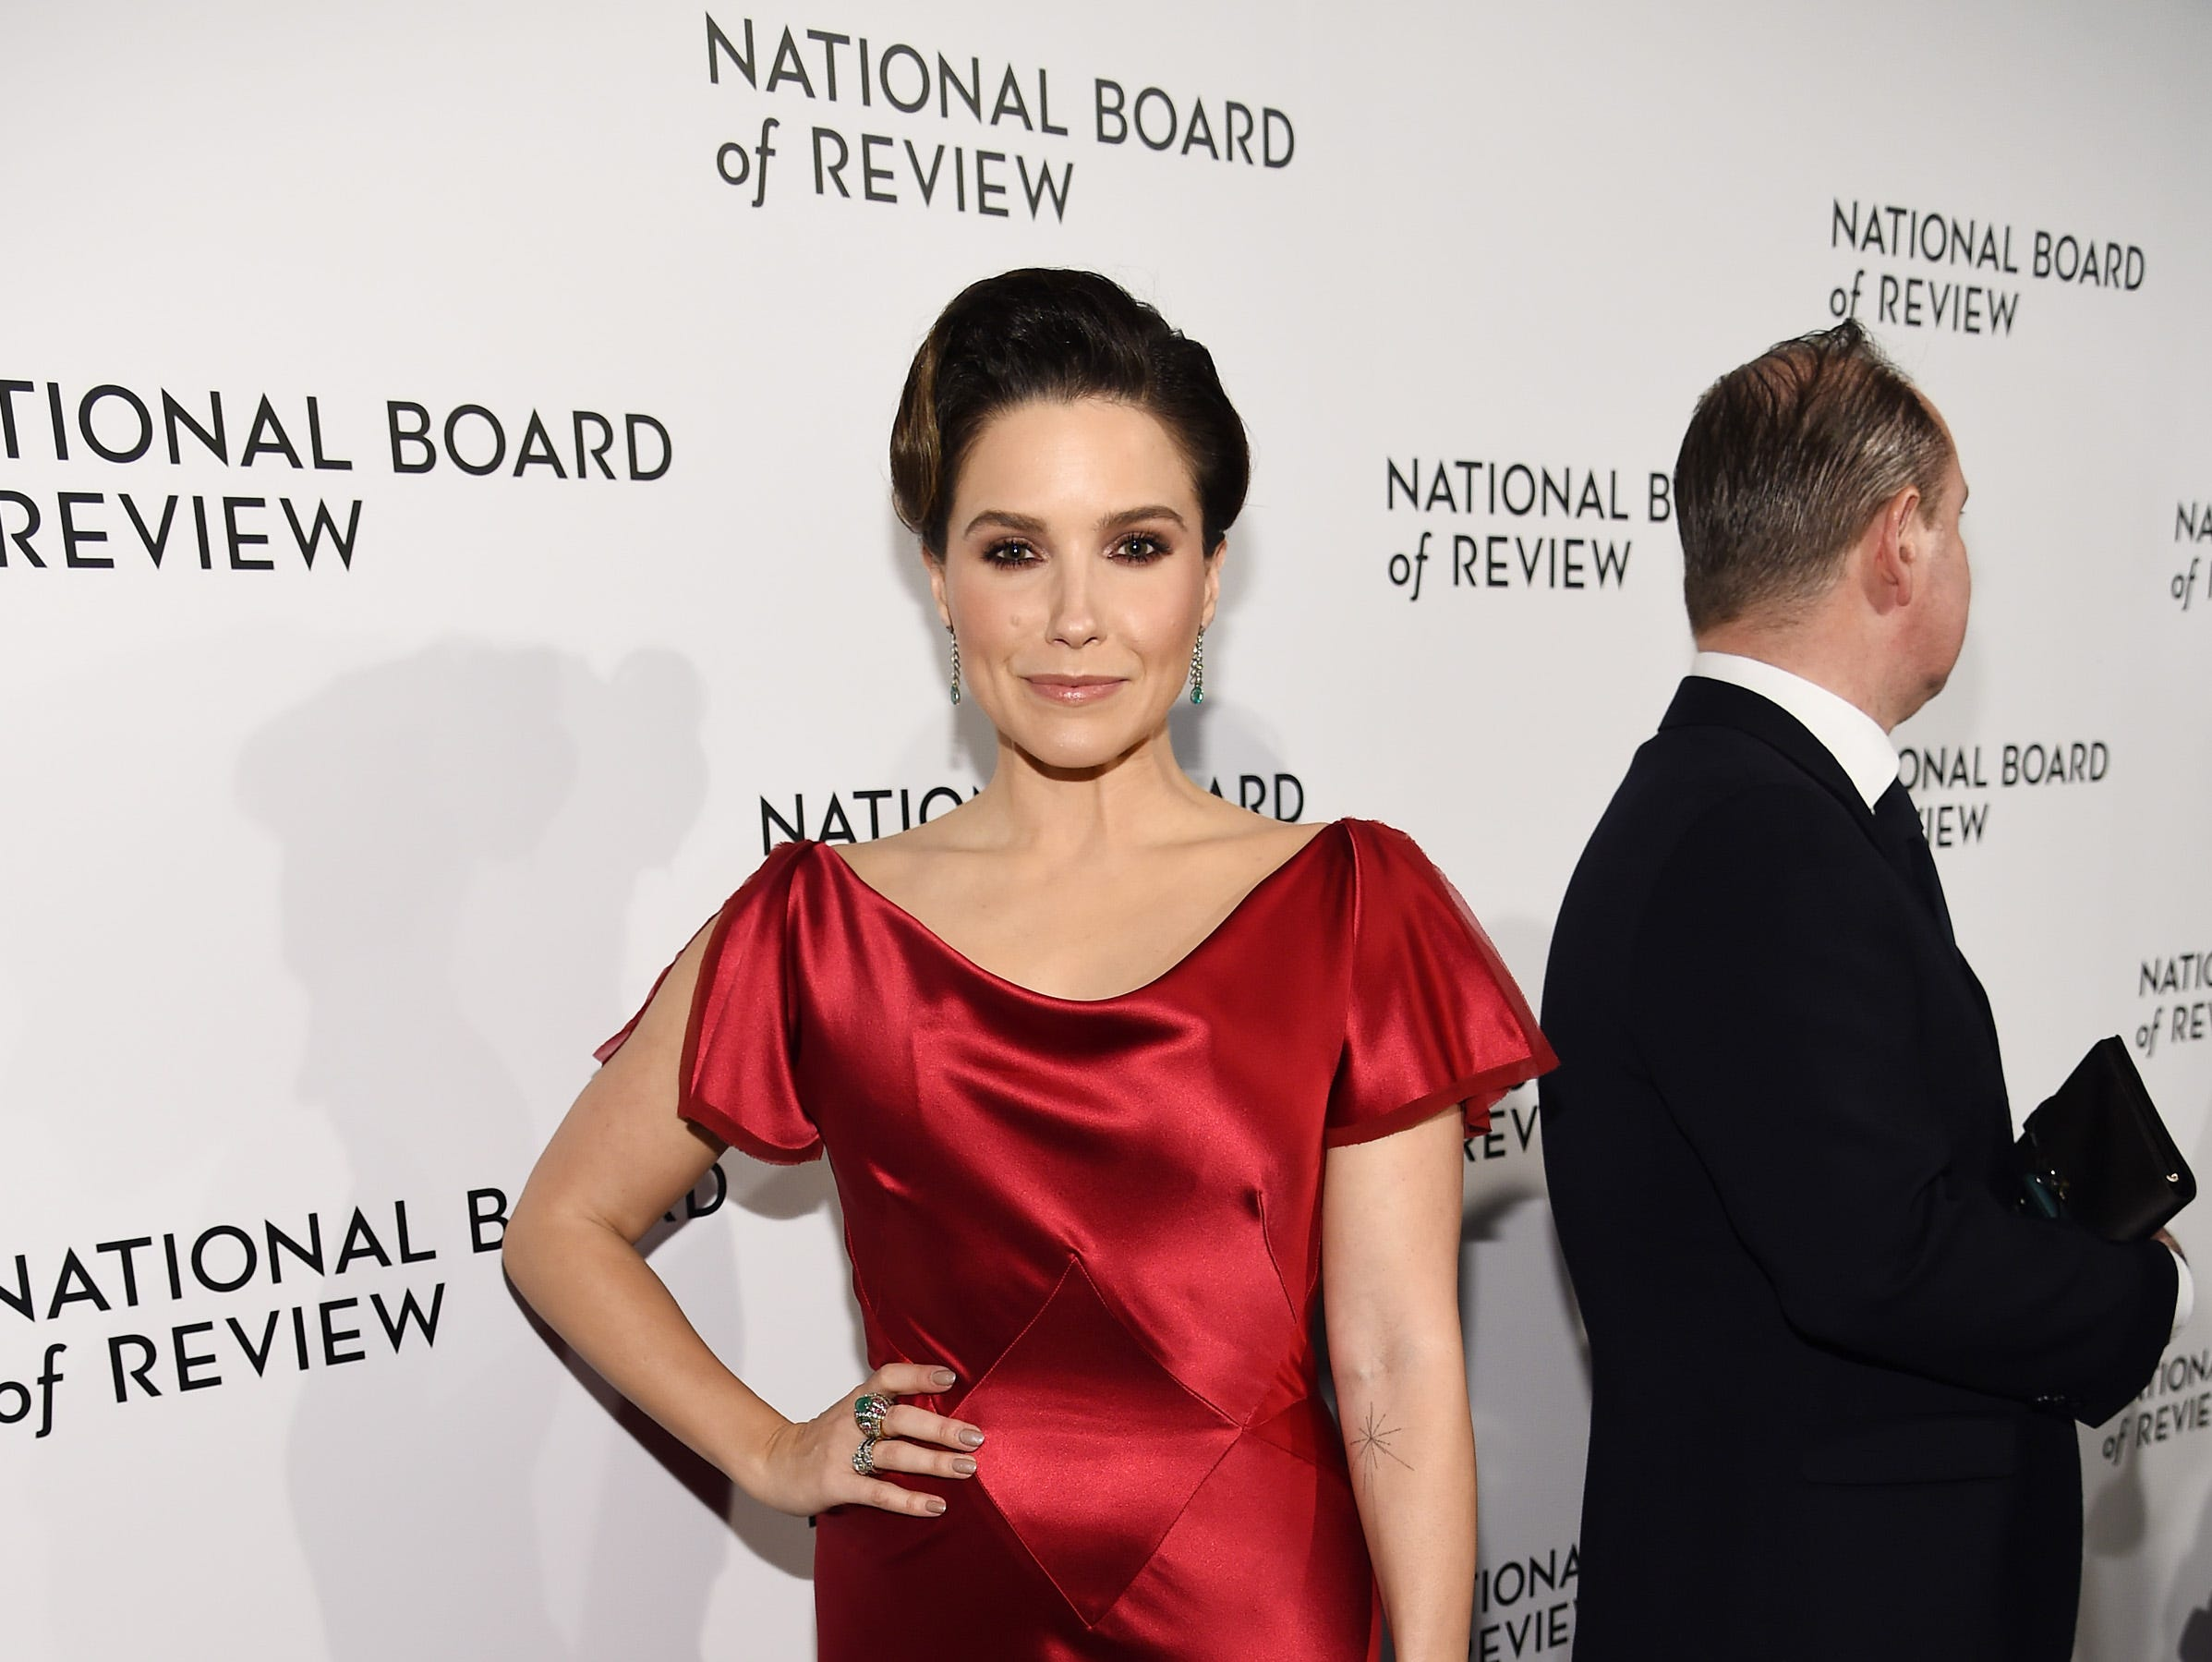 NEW YORK, NY - JANUARY 08: Sophia Bush attends The National Board of Review Annual Awards Gala at Cipriani 42nd Street on January 8, 2019 in New York City.  (Photo by Dimitrios Kambouris/Getty Images for National Board of Review) ORG XMIT: 775259363 ORIG FILE ID: 1079454434